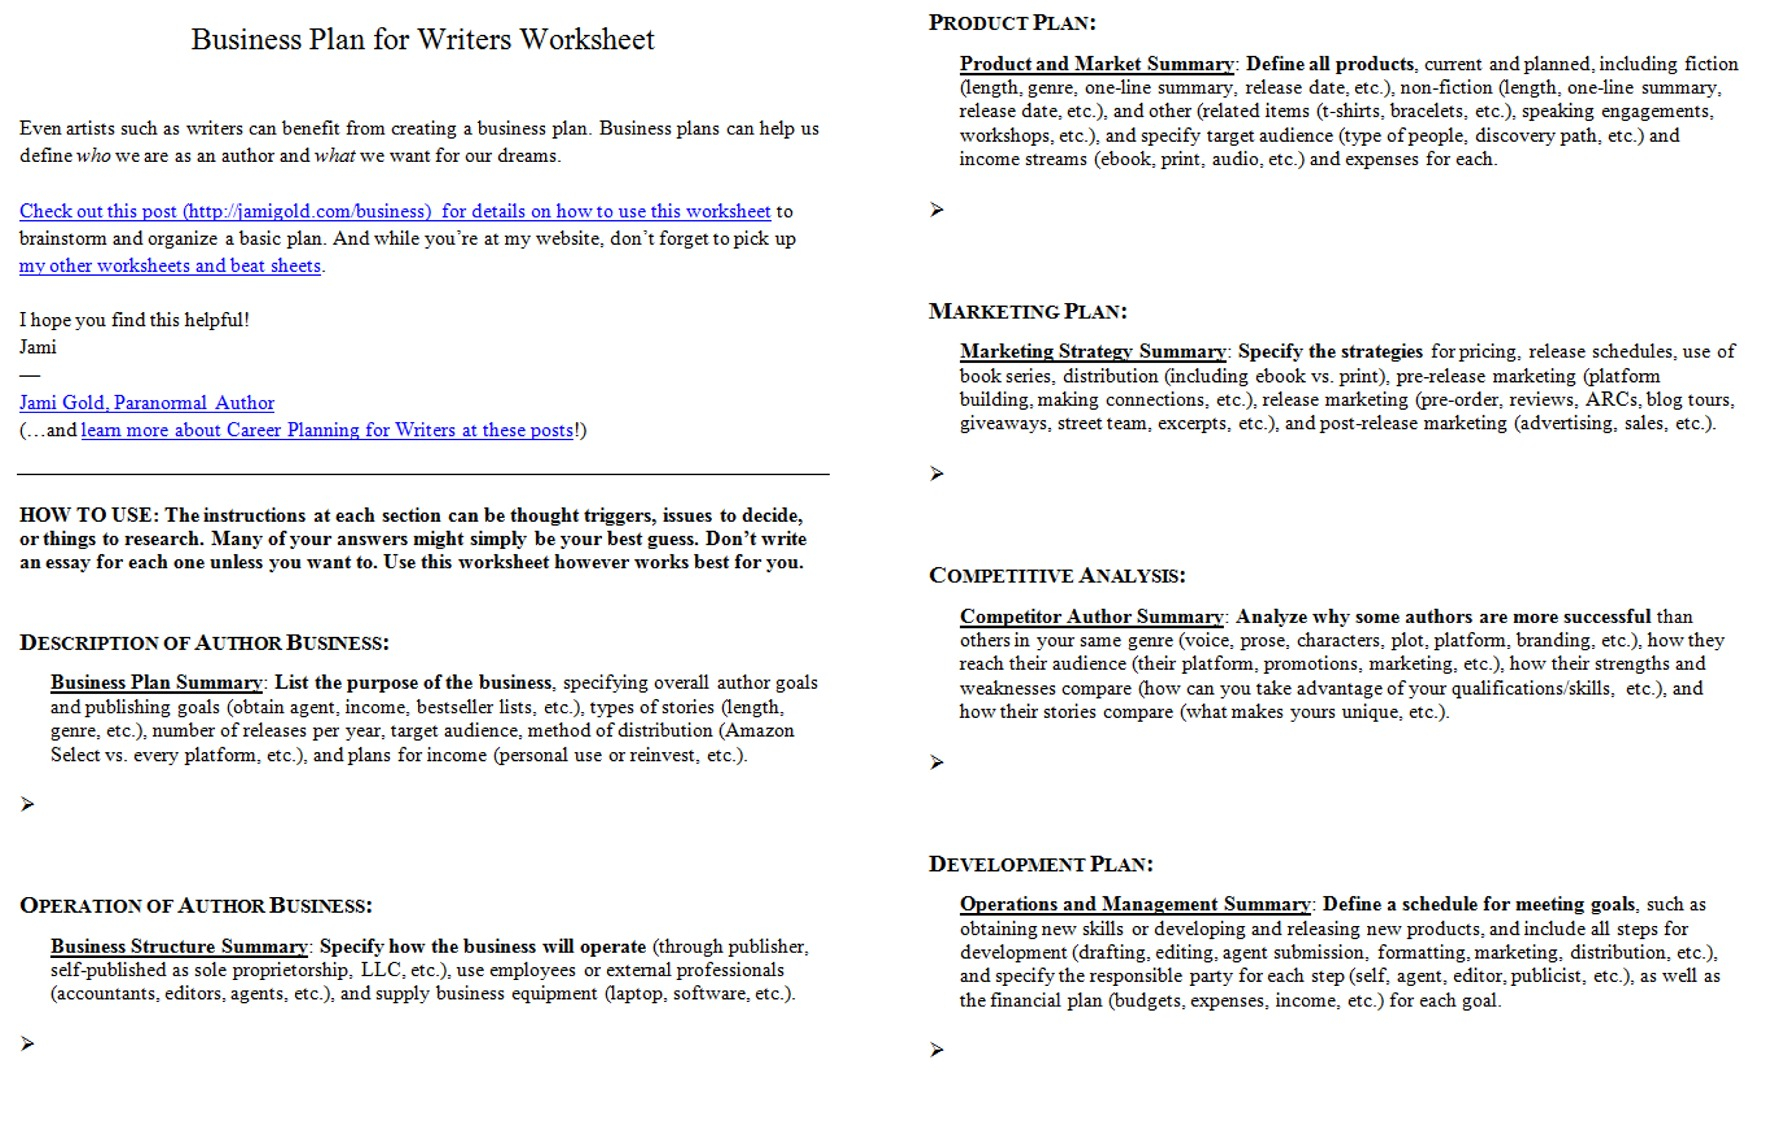 Aldiablosus  Unique Worksheets For Writers  Jami Gold Paranormal Author With Gorgeous Screen Shot Of Both Pages Of The Business Plan For Writers Worksheet With Charming Living Things And Nonliving Things Worksheet Also Garnishment Calculation Worksheet In Addition Home Budget Worksheet Template And Free Printable All About Me Worksheets As Well As Trig Identities Worksheets Additionally Letters And Numbers Worksheets From Jamigoldcom With Aldiablosus  Gorgeous Worksheets For Writers  Jami Gold Paranormal Author With Charming Screen Shot Of Both Pages Of The Business Plan For Writers Worksheet And Unique Living Things And Nonliving Things Worksheet Also Garnishment Calculation Worksheet In Addition Home Budget Worksheet Template From Jamigoldcom